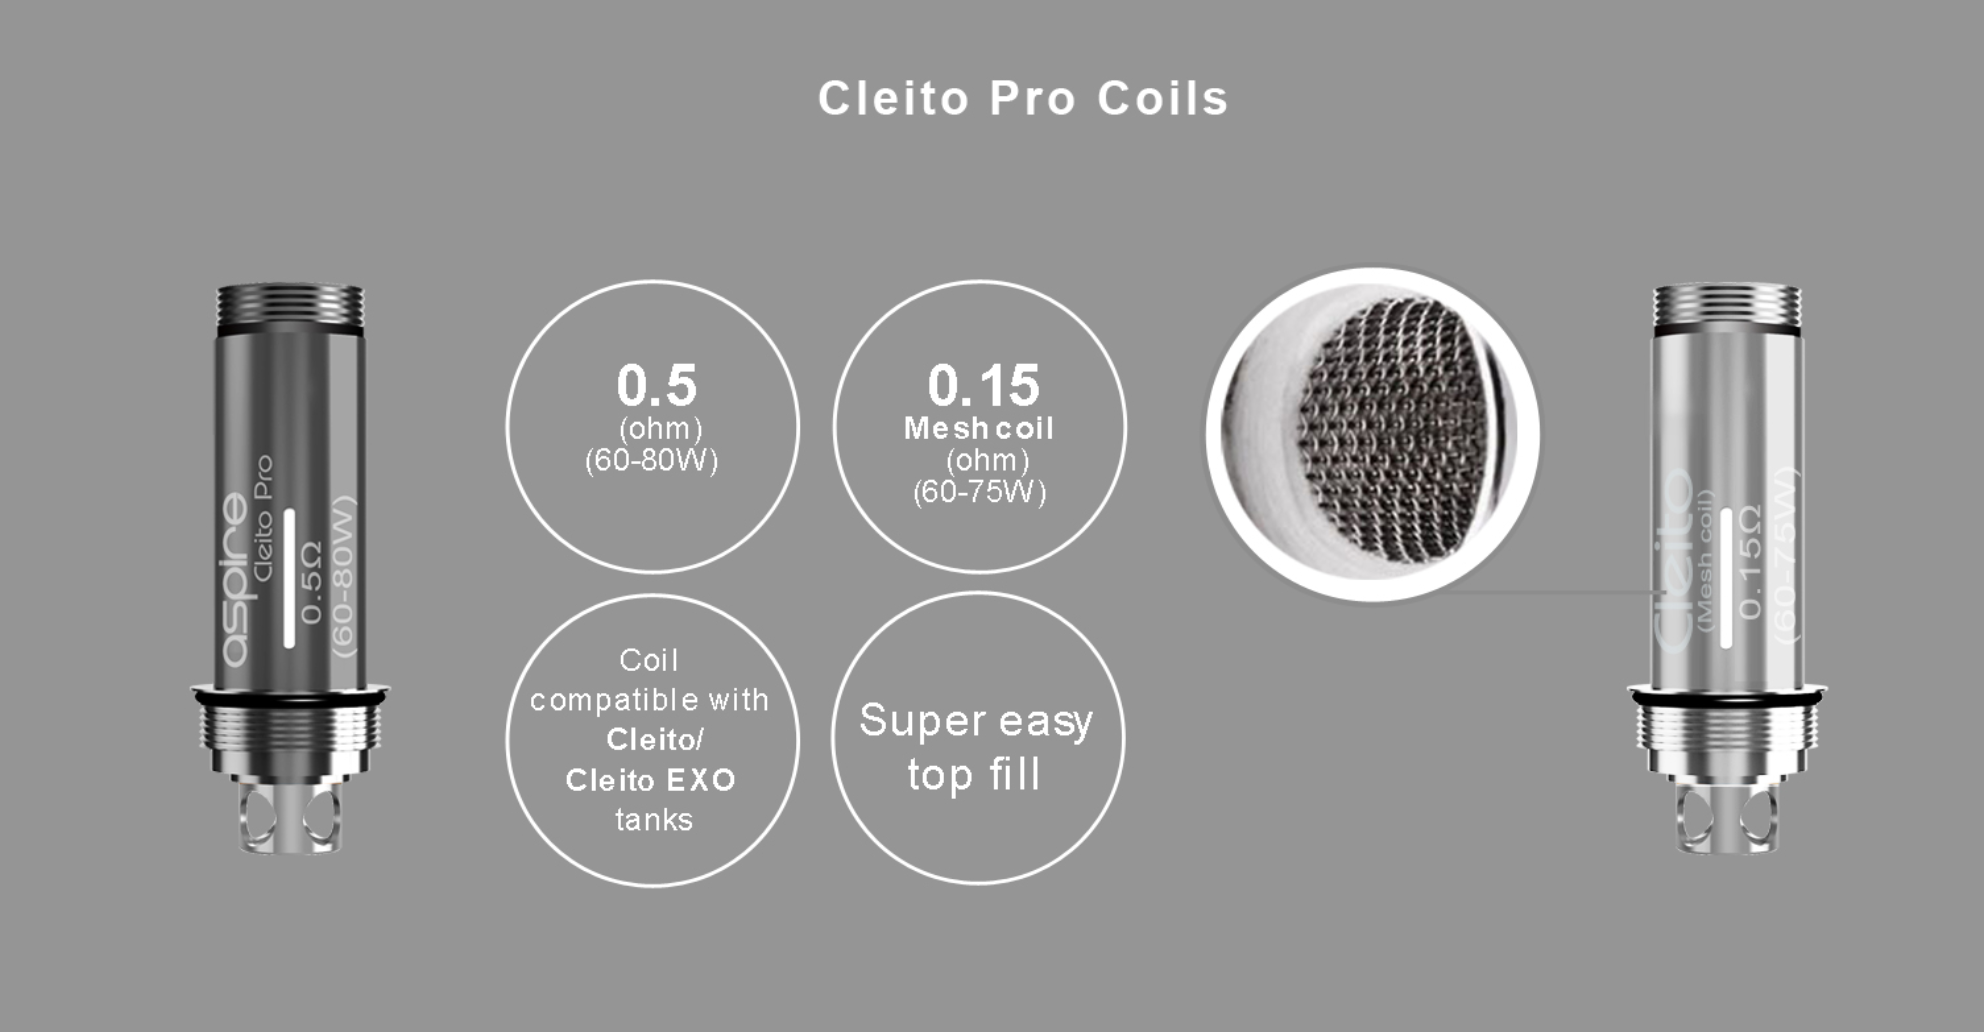 Cleito Pro tankコイル